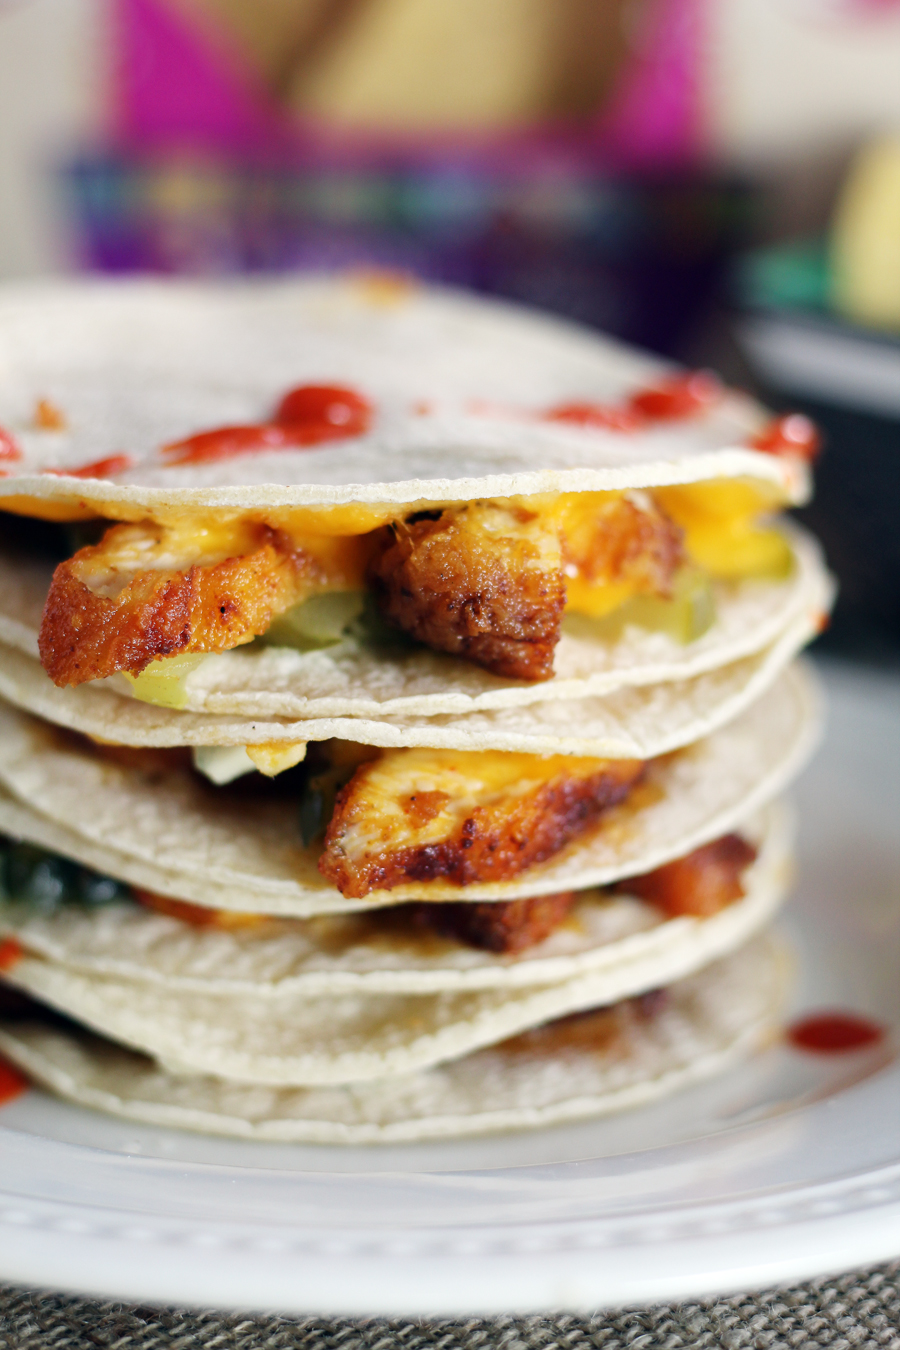 Corn tortillas topped with hot chicken, pickles, cheese and more